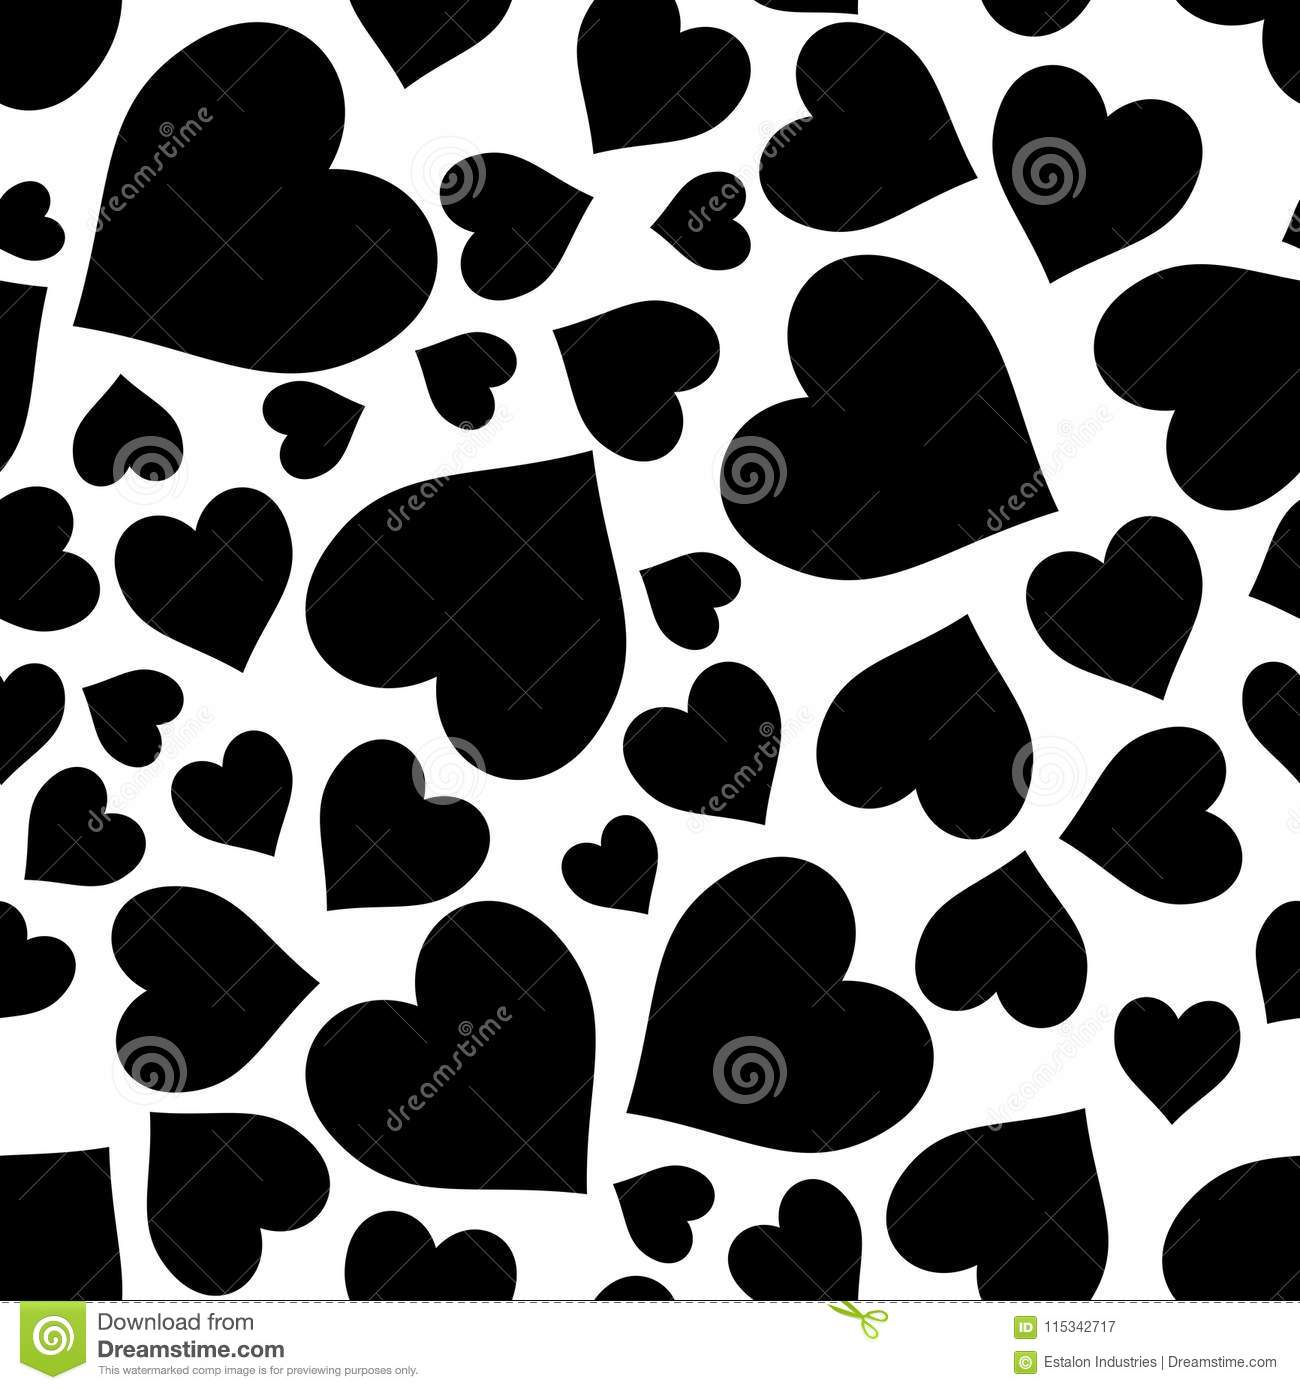 Black On White Random Love Heart Pattern Seamless Repeat Background Stock Illustration Illustration Of Giraffe Canes 115342717